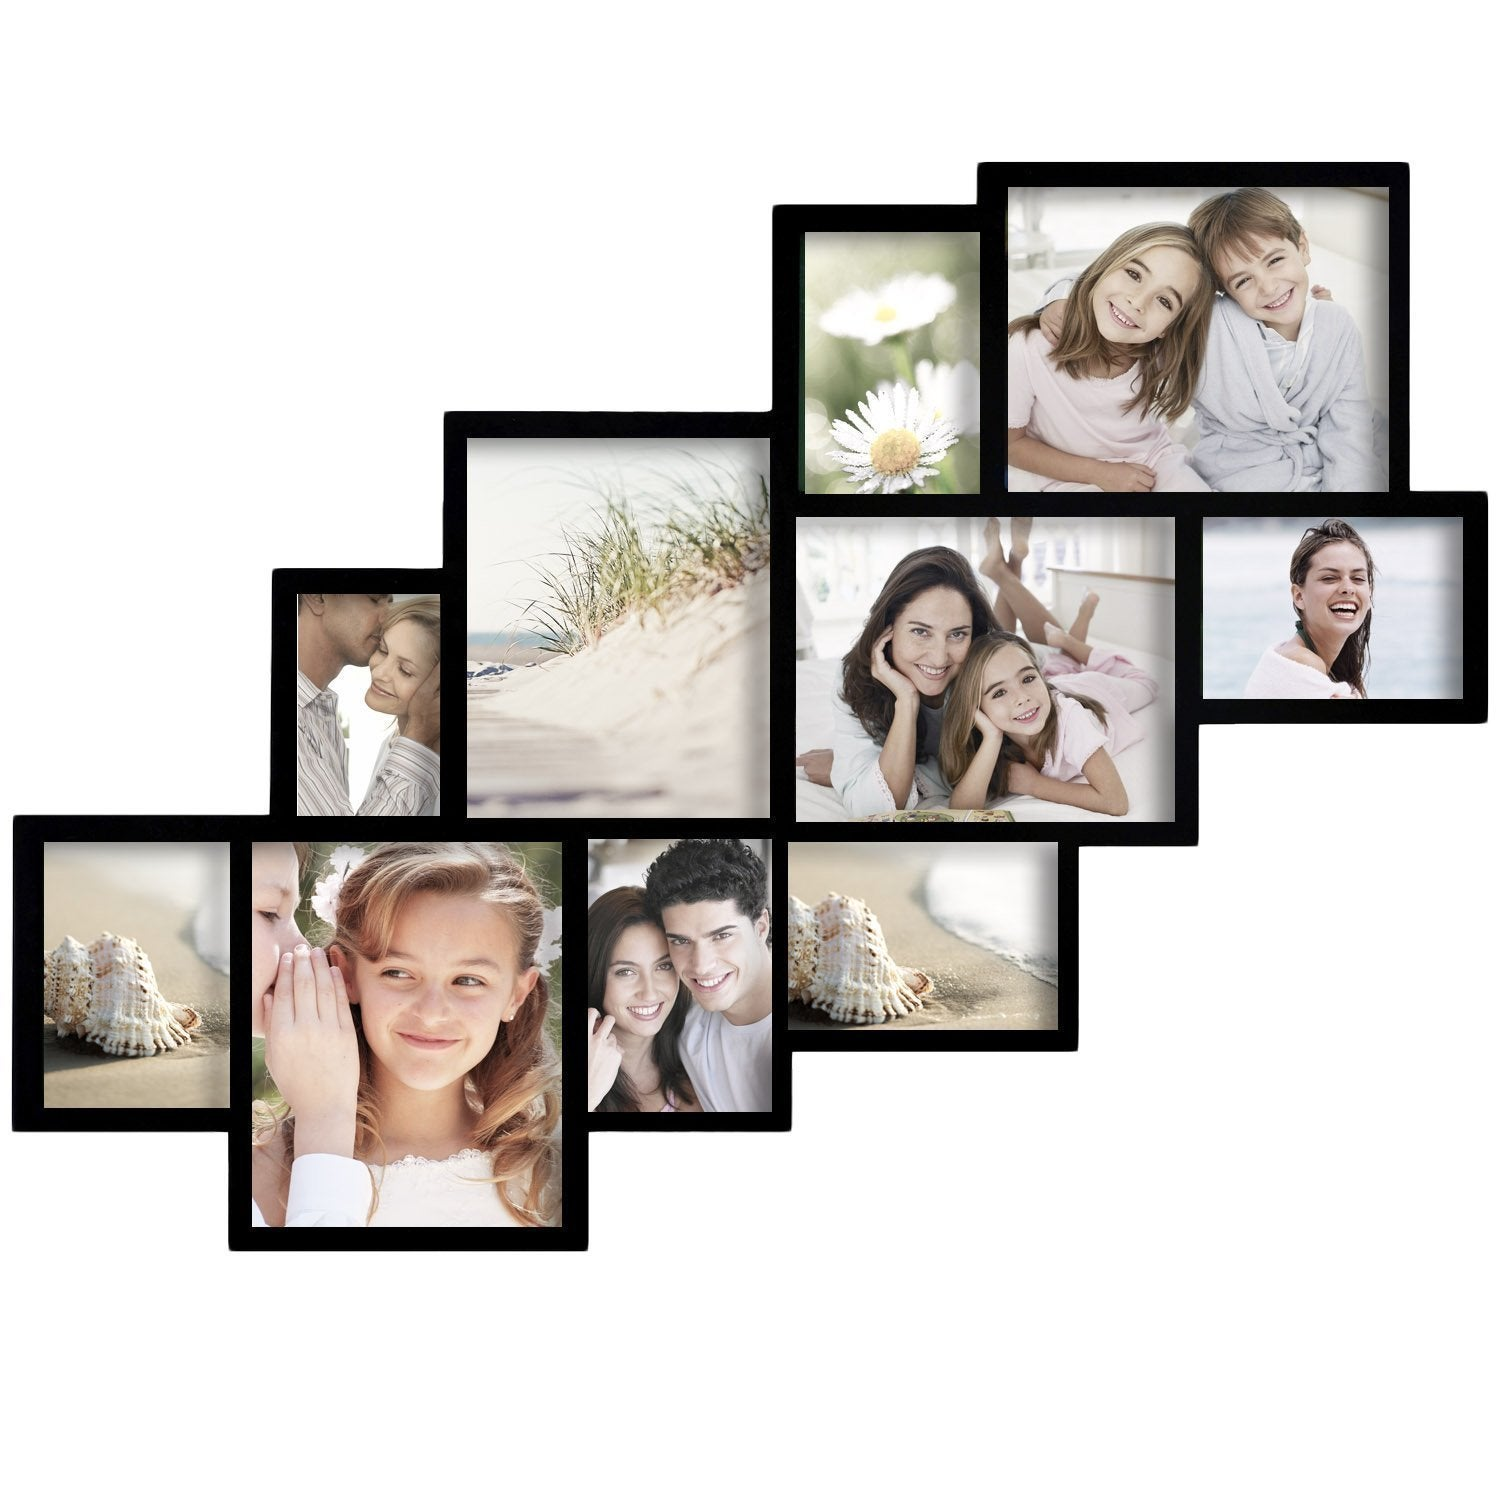 Adeco decorative black wood wall hanging picture frame collage adeco decorative black wood wall hanging picture frame collage with 10 clustered 4 8x10 inch 5 5x7 inch 1 4x6 inch openings free shipping today jeuxipadfo Gallery